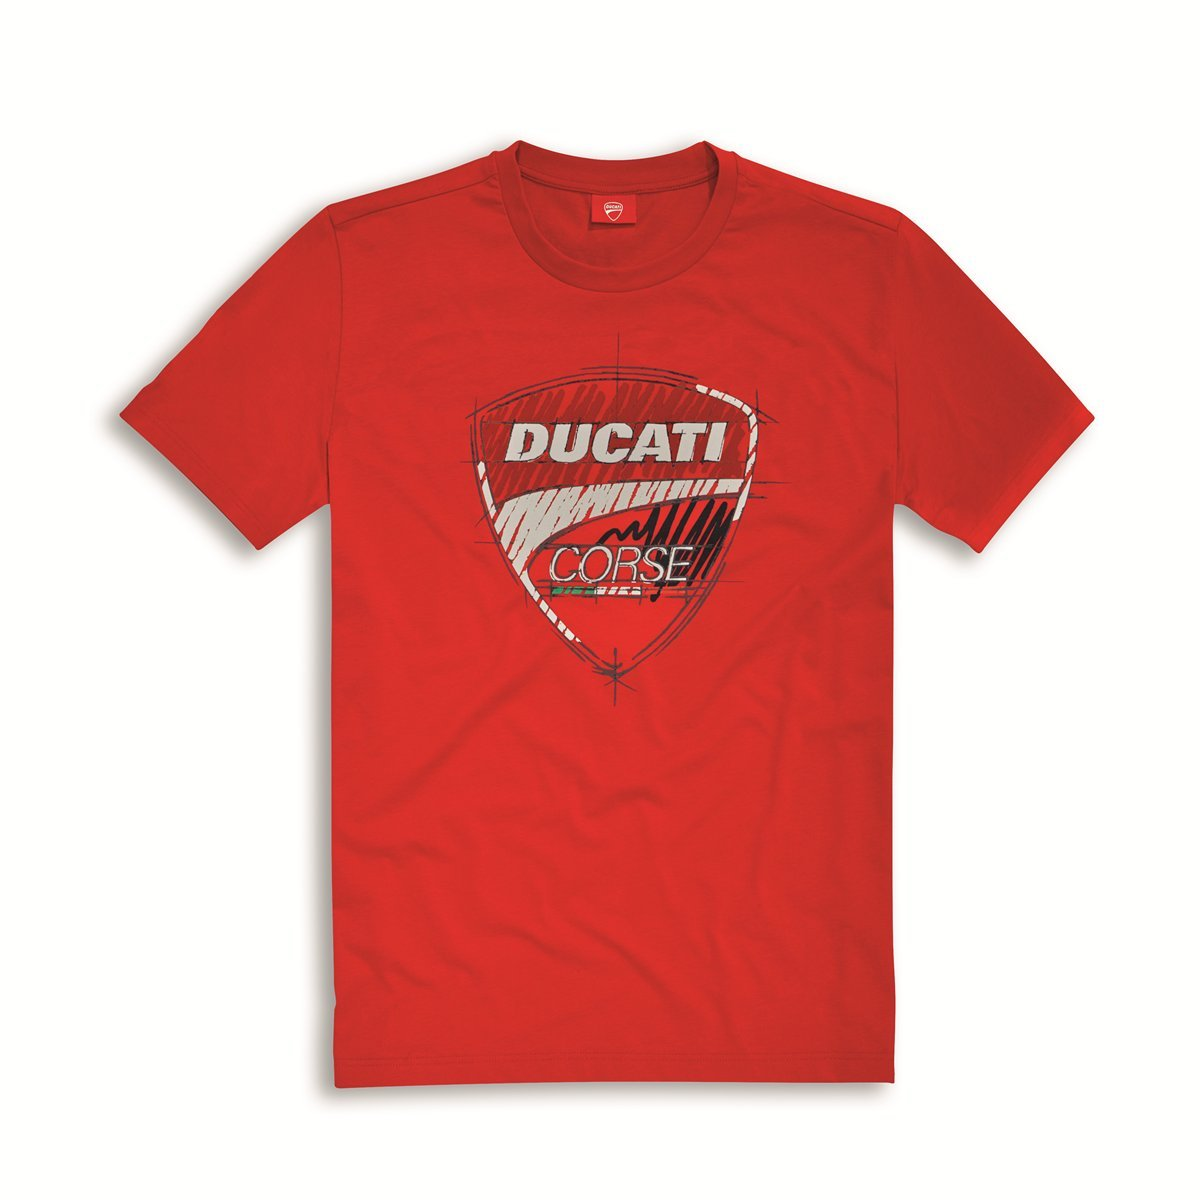 Ducati Corse Sketch T-shirt Red Size Large